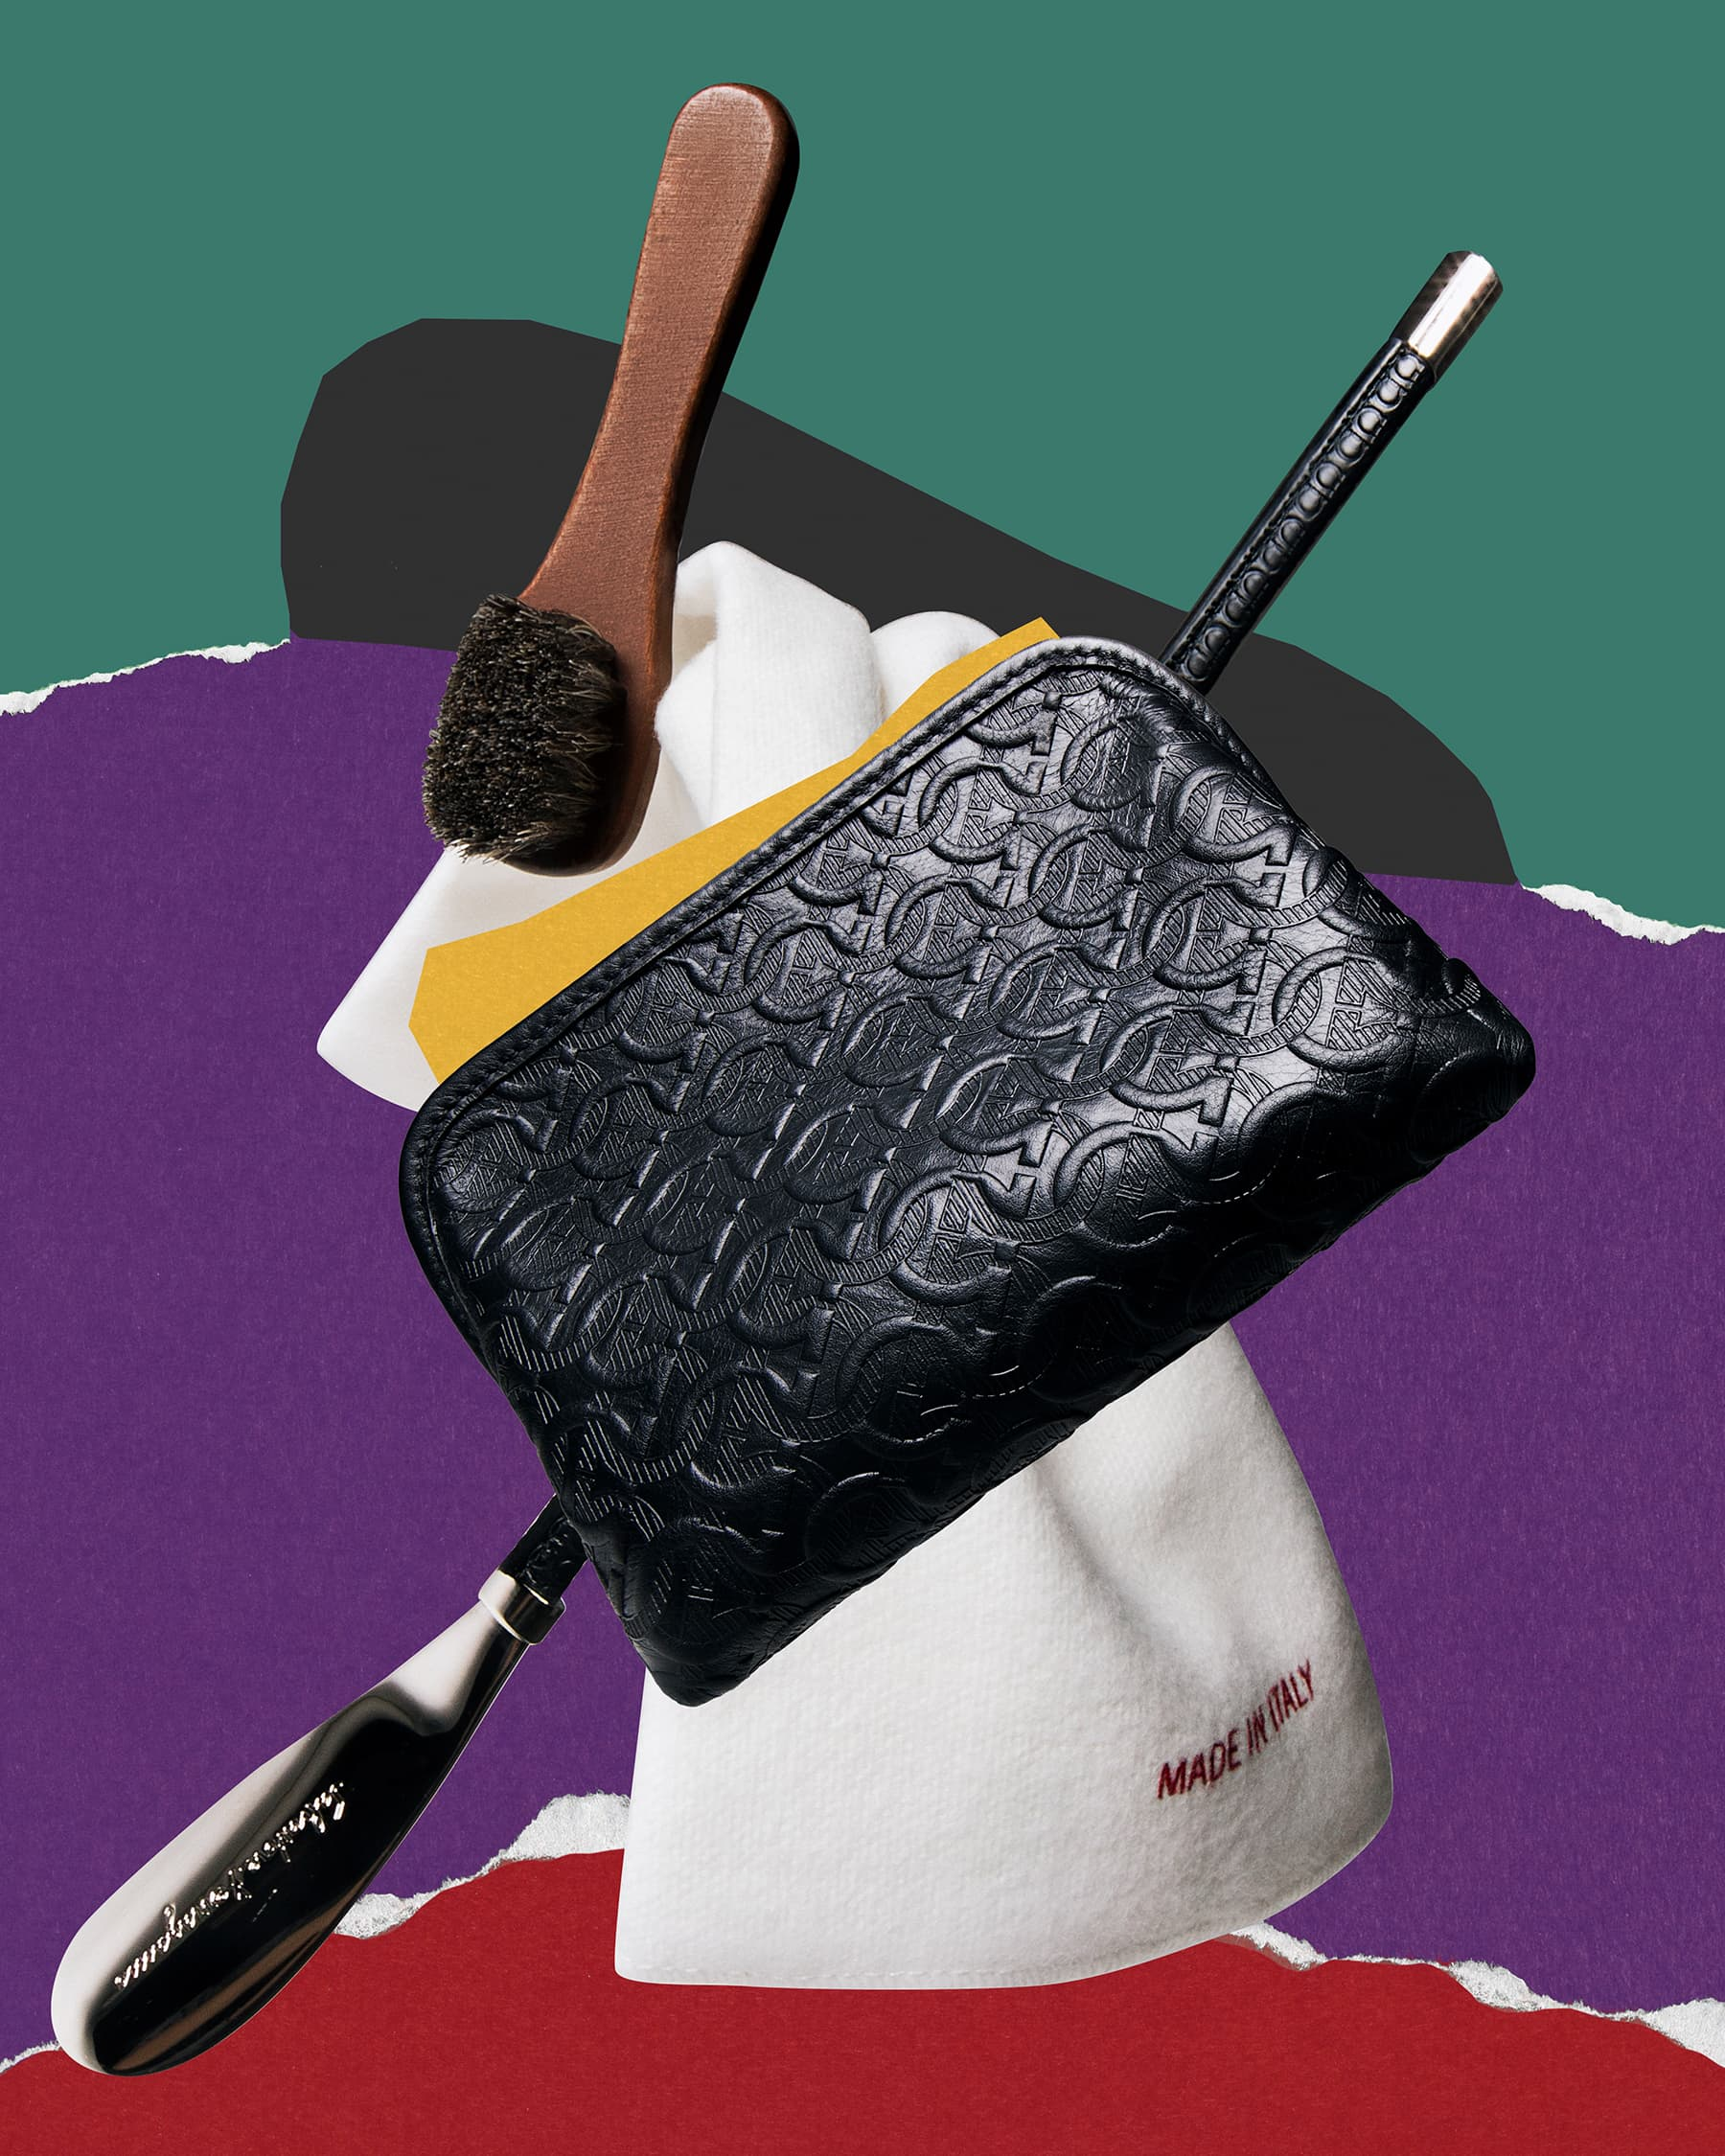 Salvatore Ferragamo Launches Art Collaboration Series